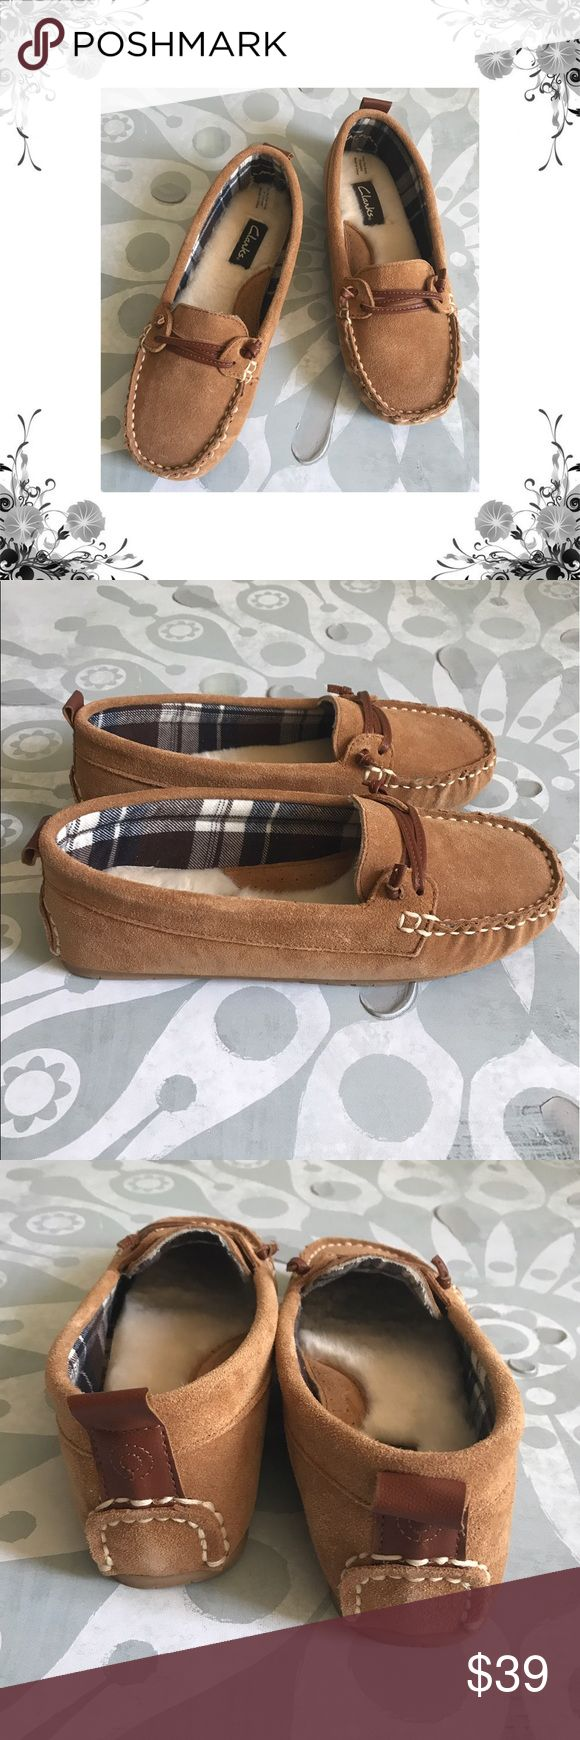 """Clark's Tan Suede Faux Fur Moccasins Manufacturer Color is Cinnamon. New with box. Loafers/Moccasins. Heel Height is approx 1/2"""". Platform Height is approx 1/4"""". Slip On. Leather/Faux Fur material. Suede fabric. Faux Fur Lined. Bundle for discounts! Thank you for shopping my closet! Clarks Shoes Moccasins"""